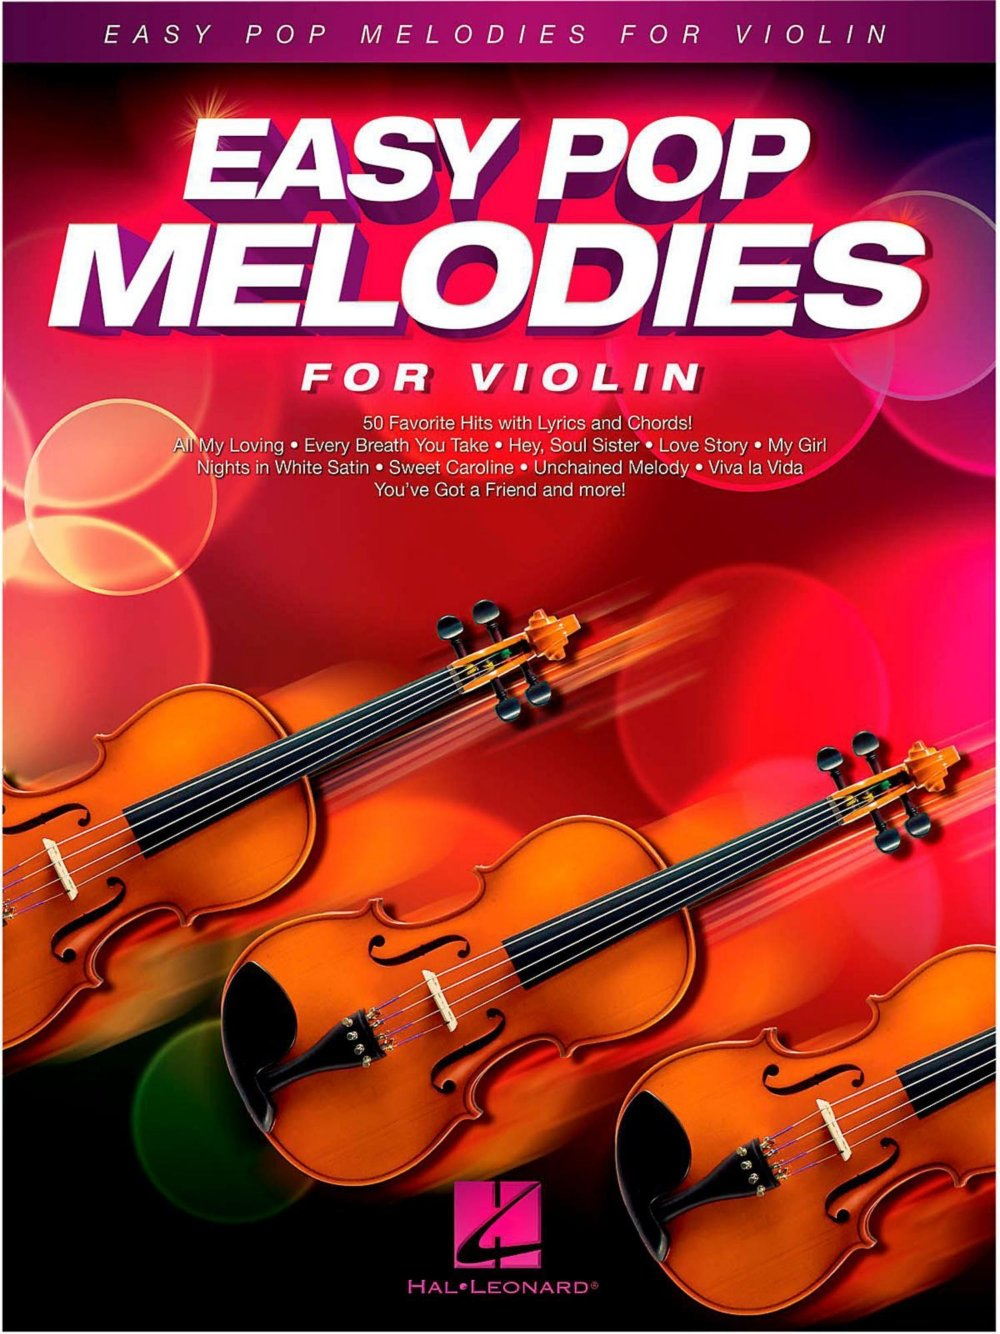 Easy Pop Melodies For Violin Sheet Music For Violin Lyrics